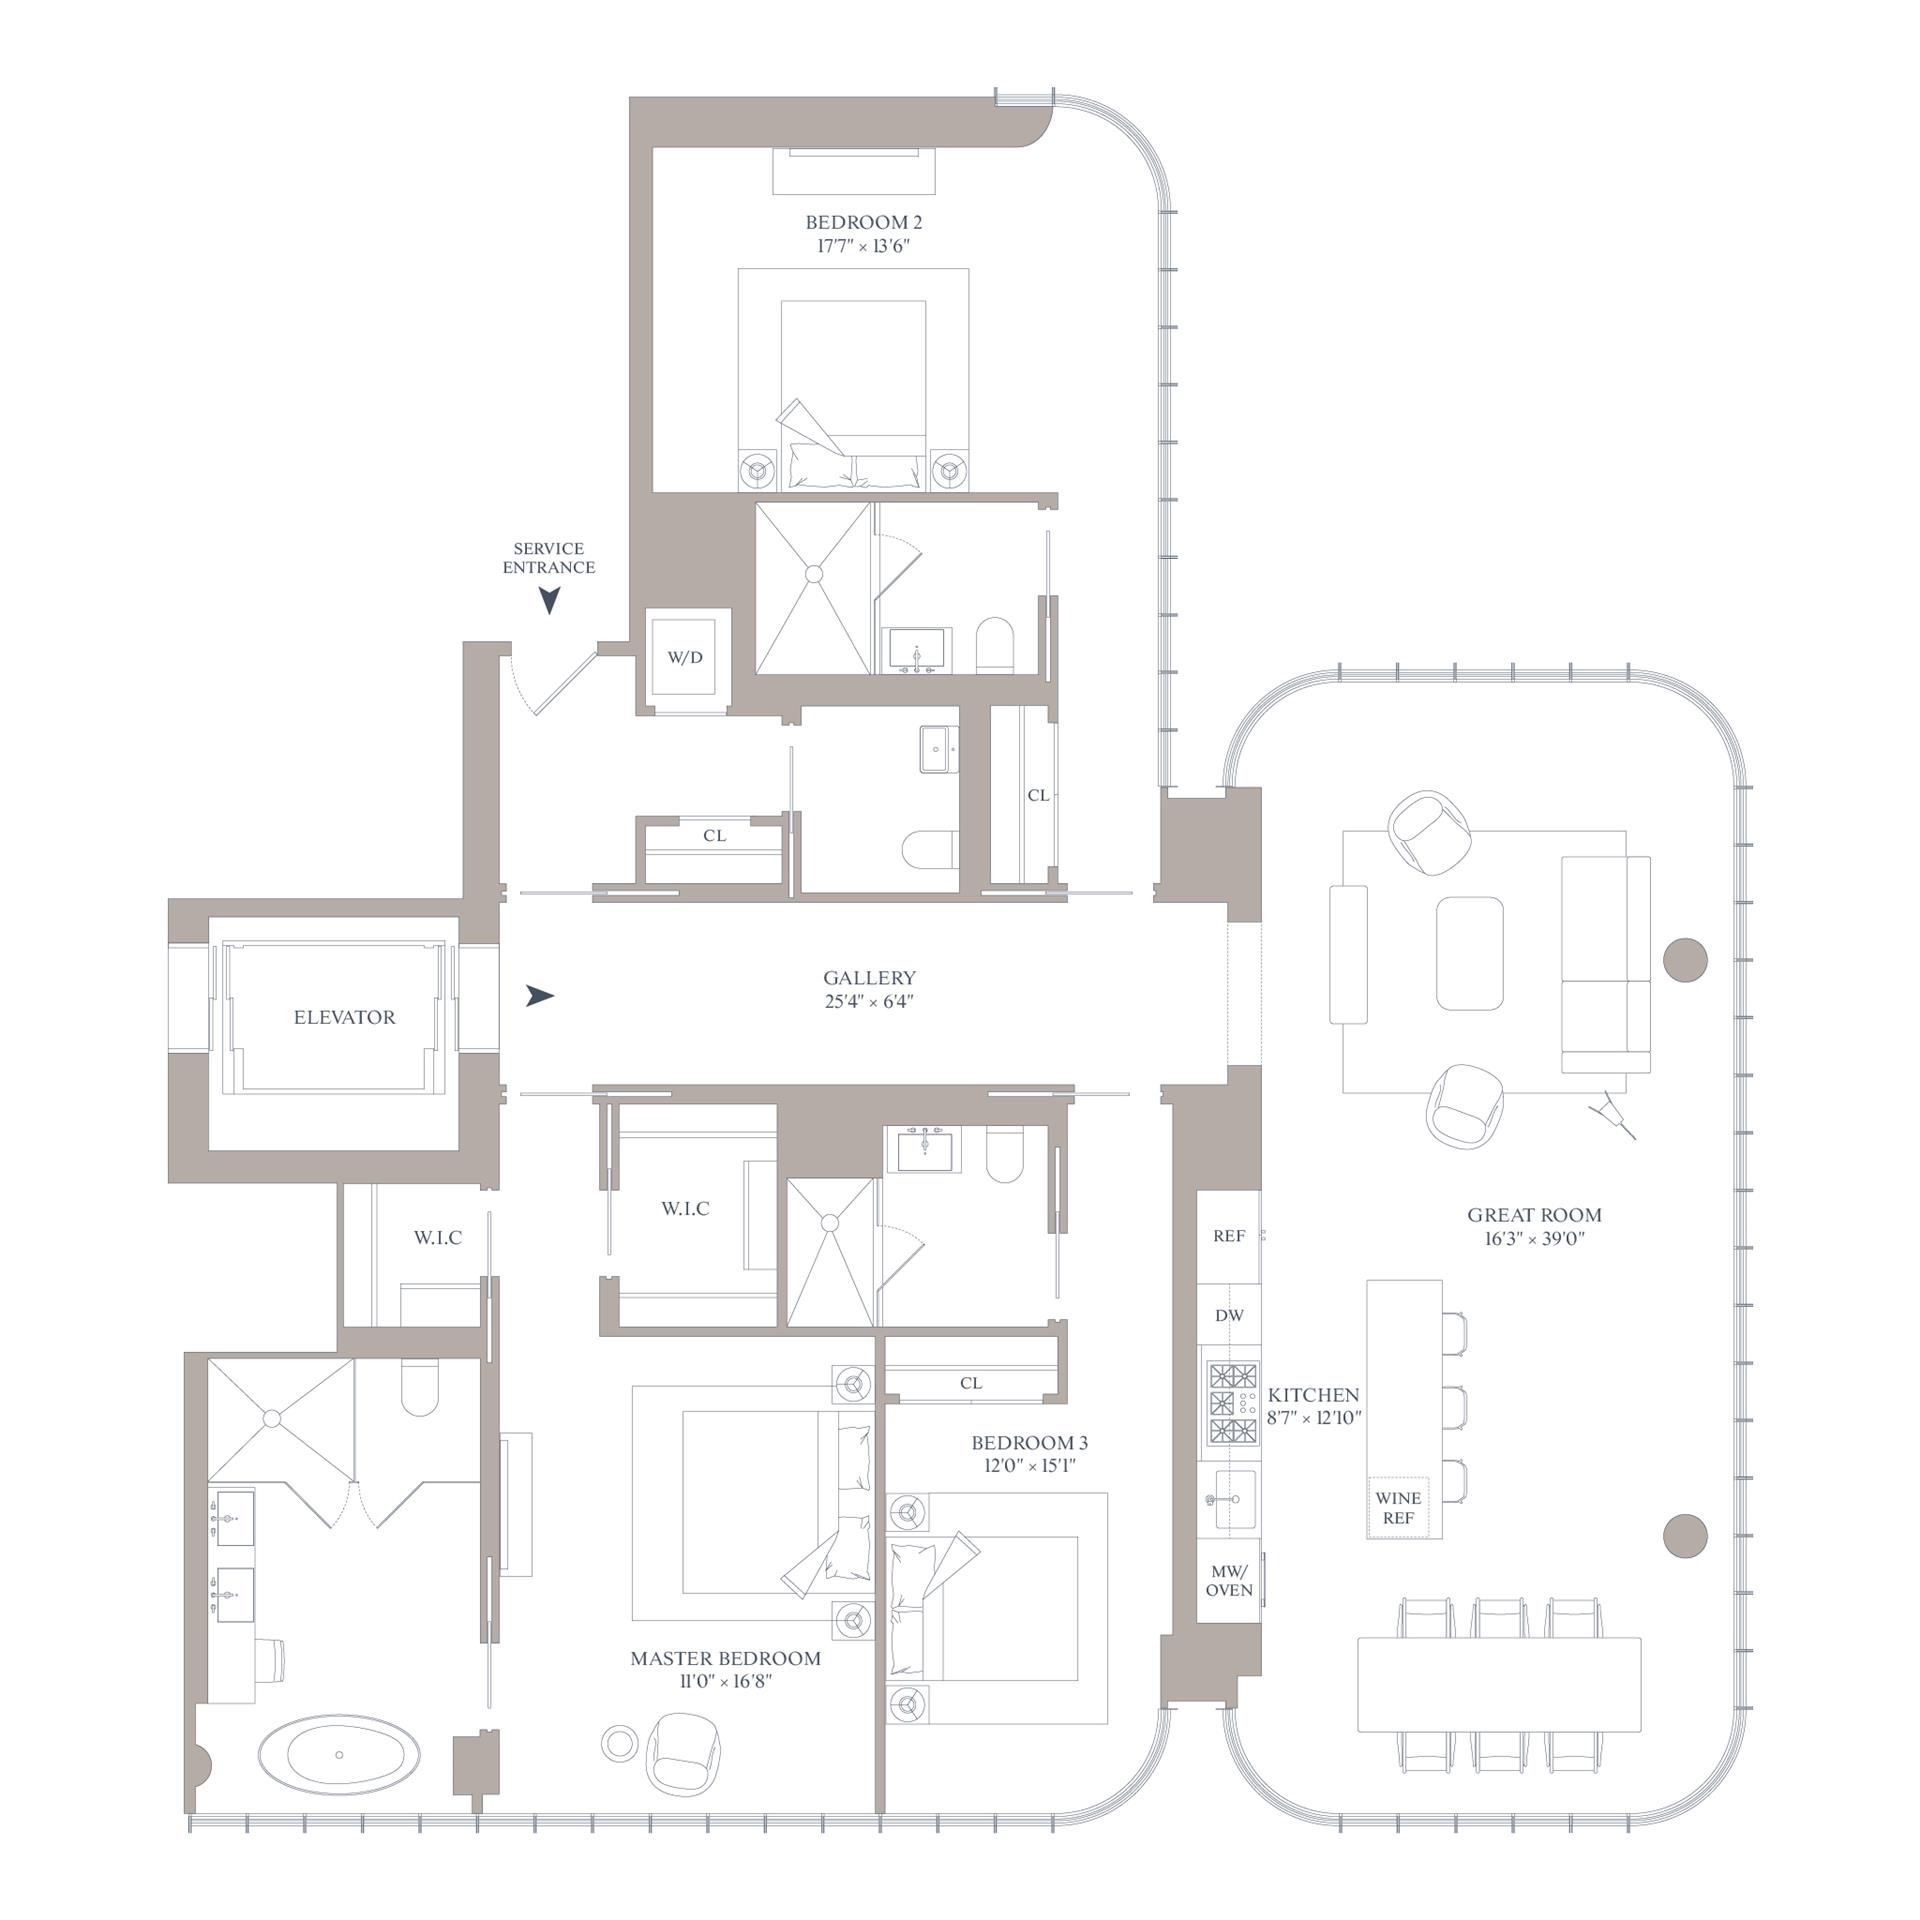 Floor plan of 565 Broome St, S19B - SoHo - Nolita, New York